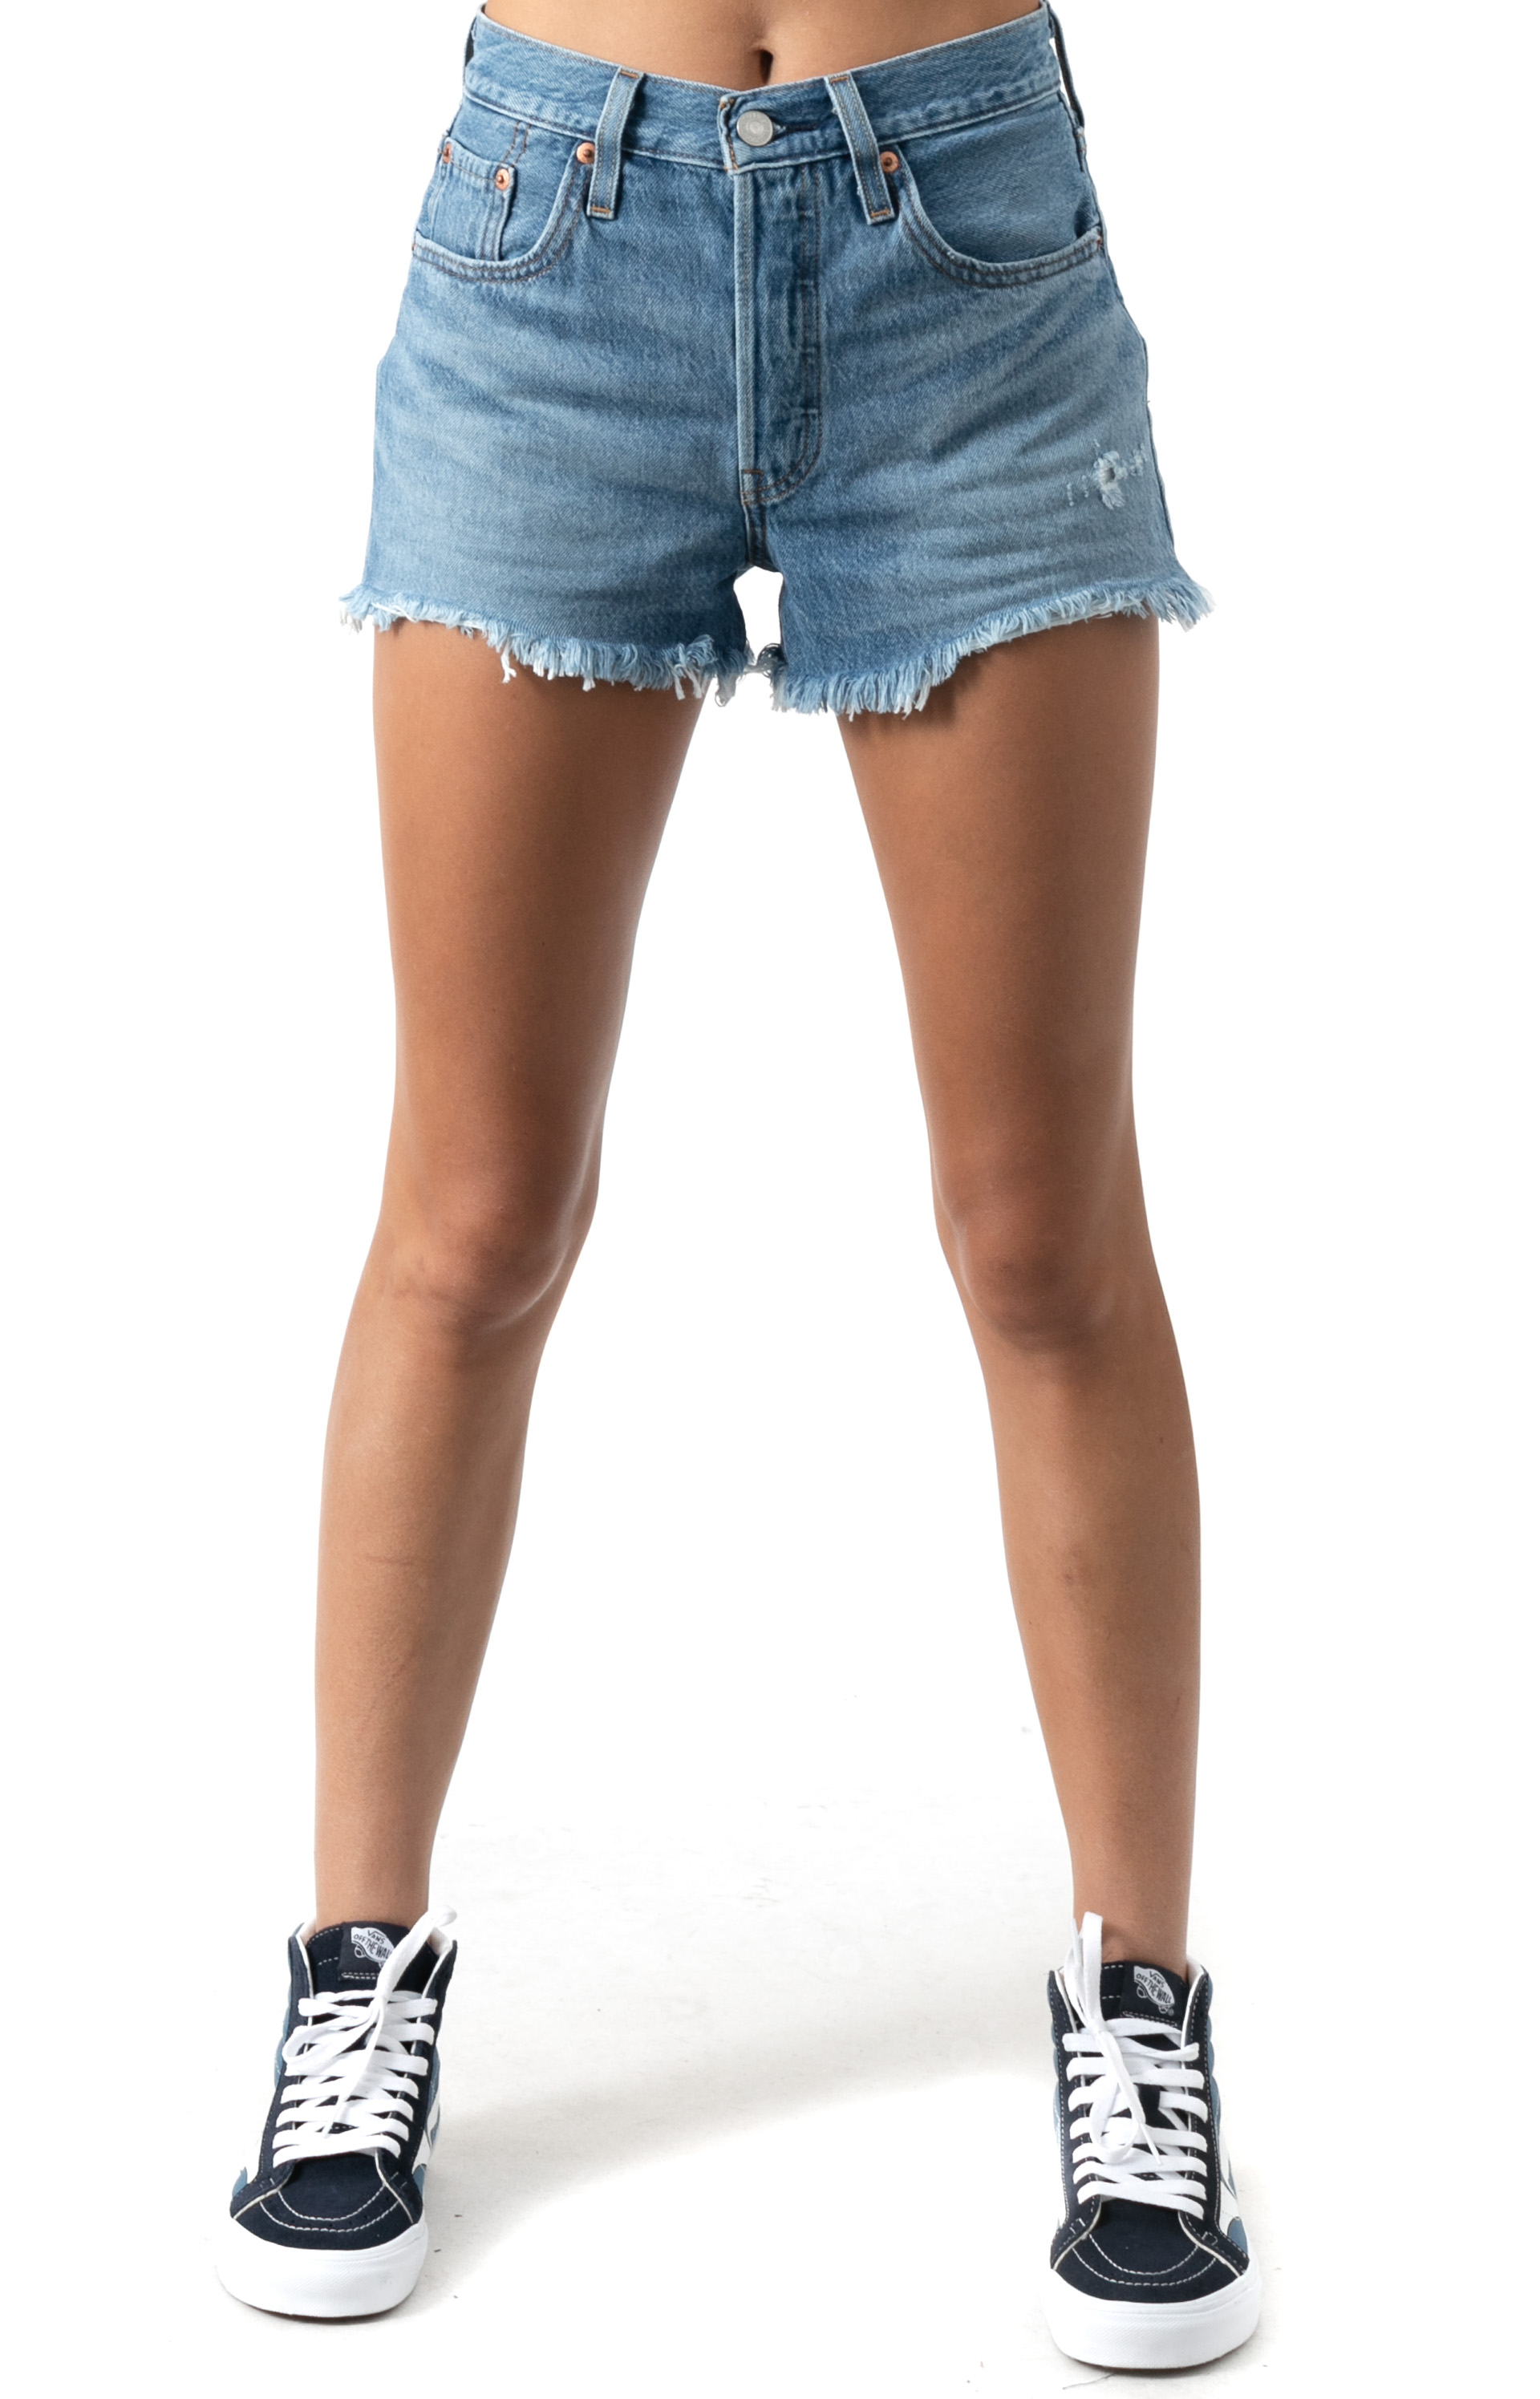 (56327-0114) 501 Original Shorts - Sansome Breeze